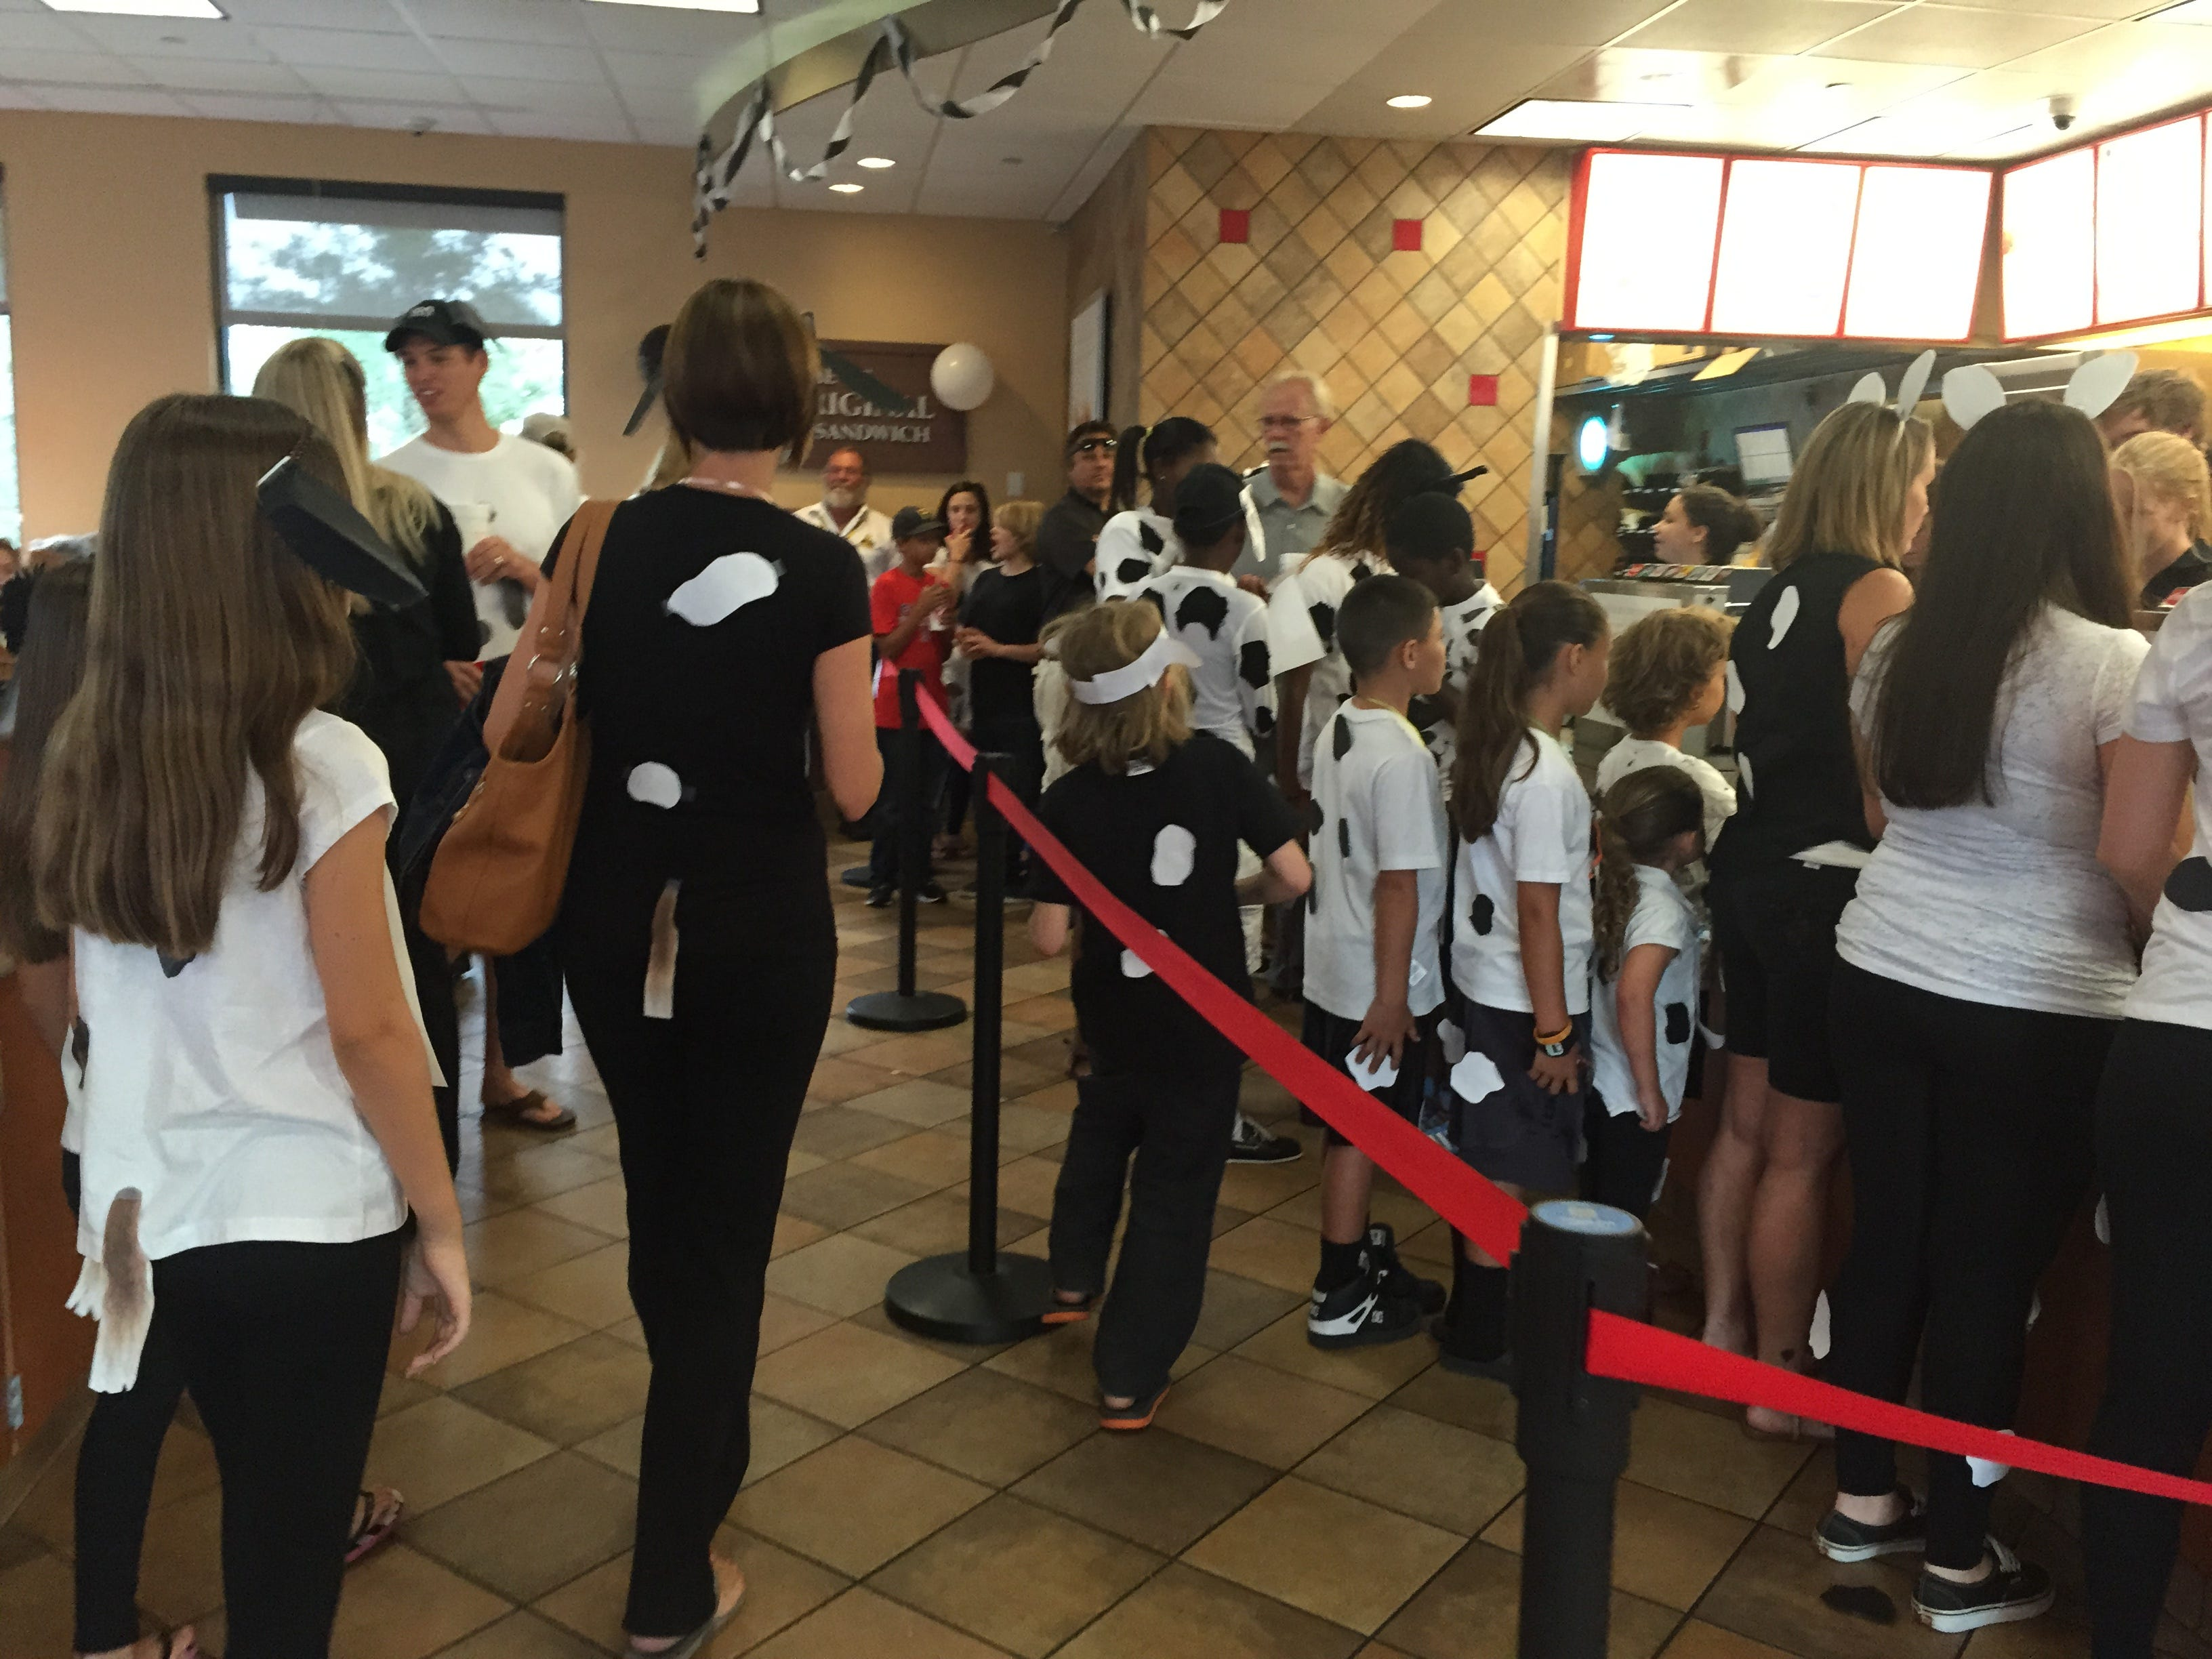 photo relating to Printable Cow Spots Chick Fil a named Cow Appreciation Working day: Obtain no cost Chick-fil-A for dressing such as a